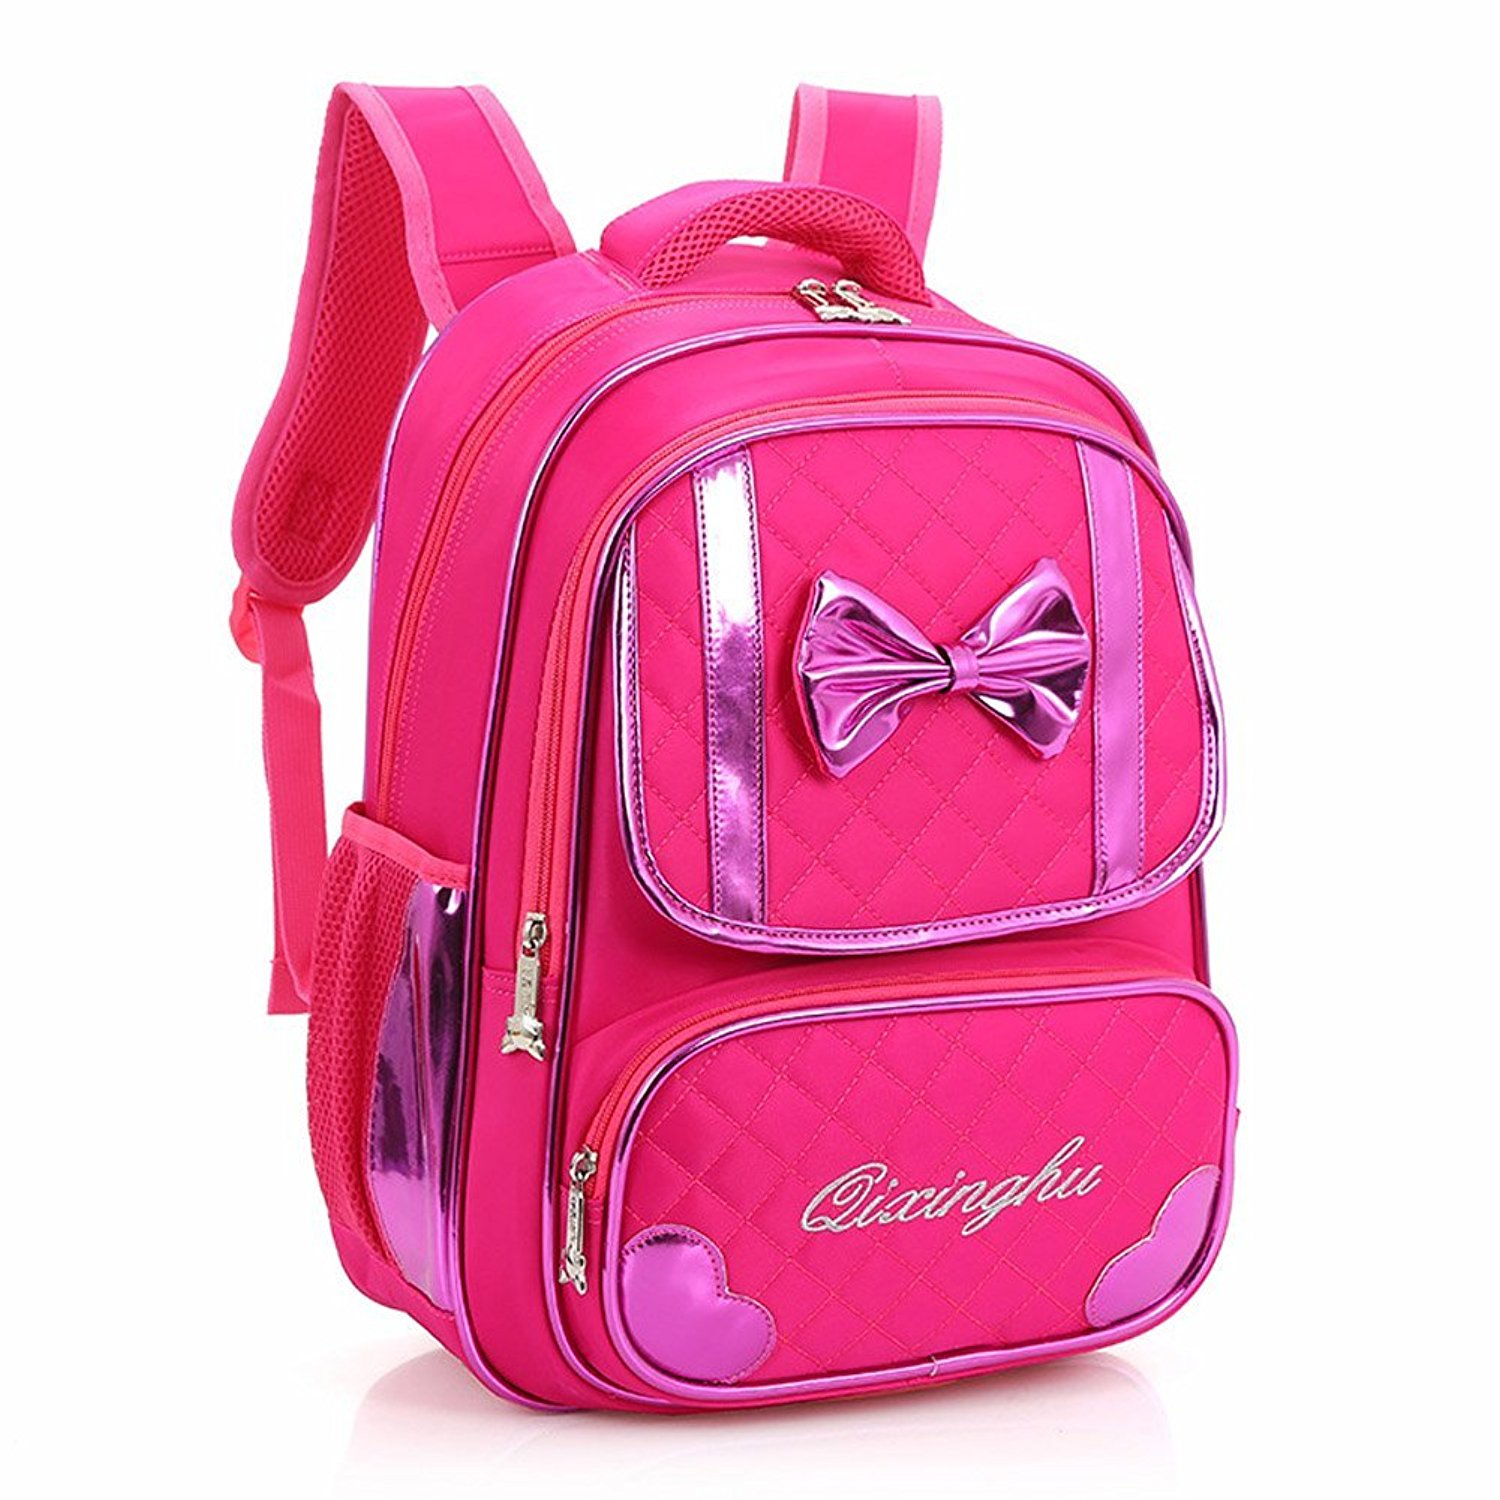 47f8af6110 Dsinlare Cute Elementary School Bowknot Girls Bookbags for Kids Backpacks